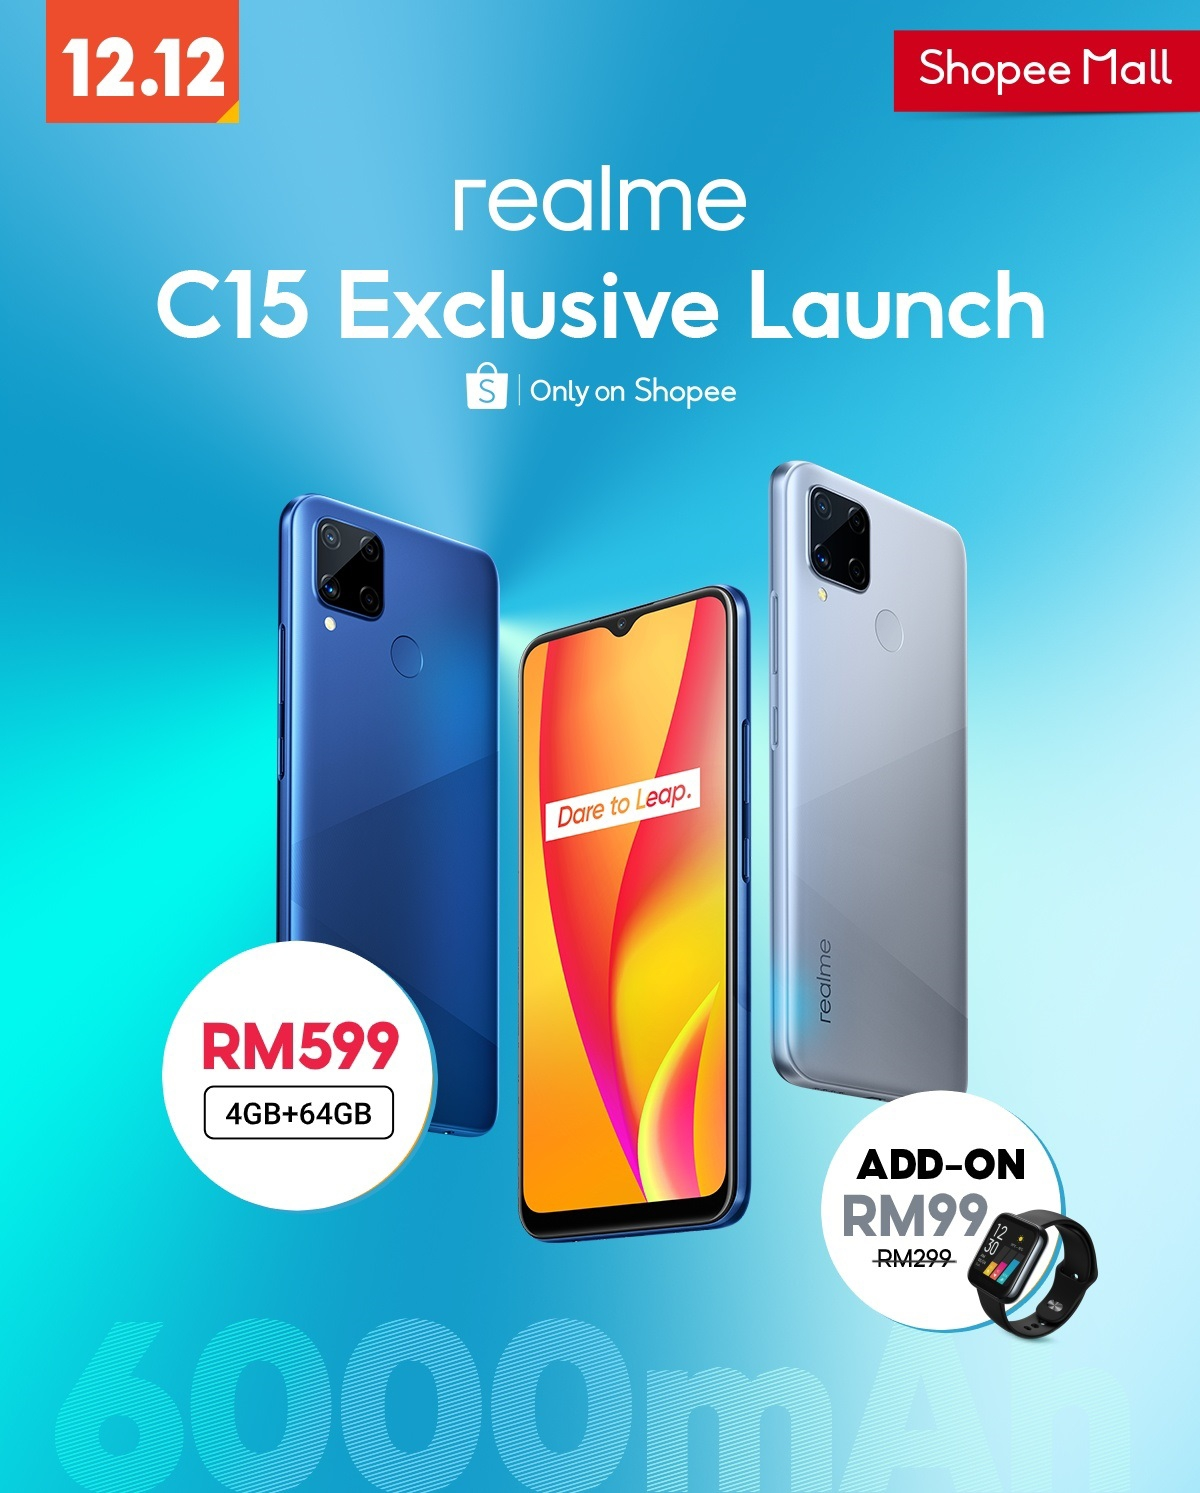 Shopee launches it's Realme C15 Discount on 12.12 Shopping Day